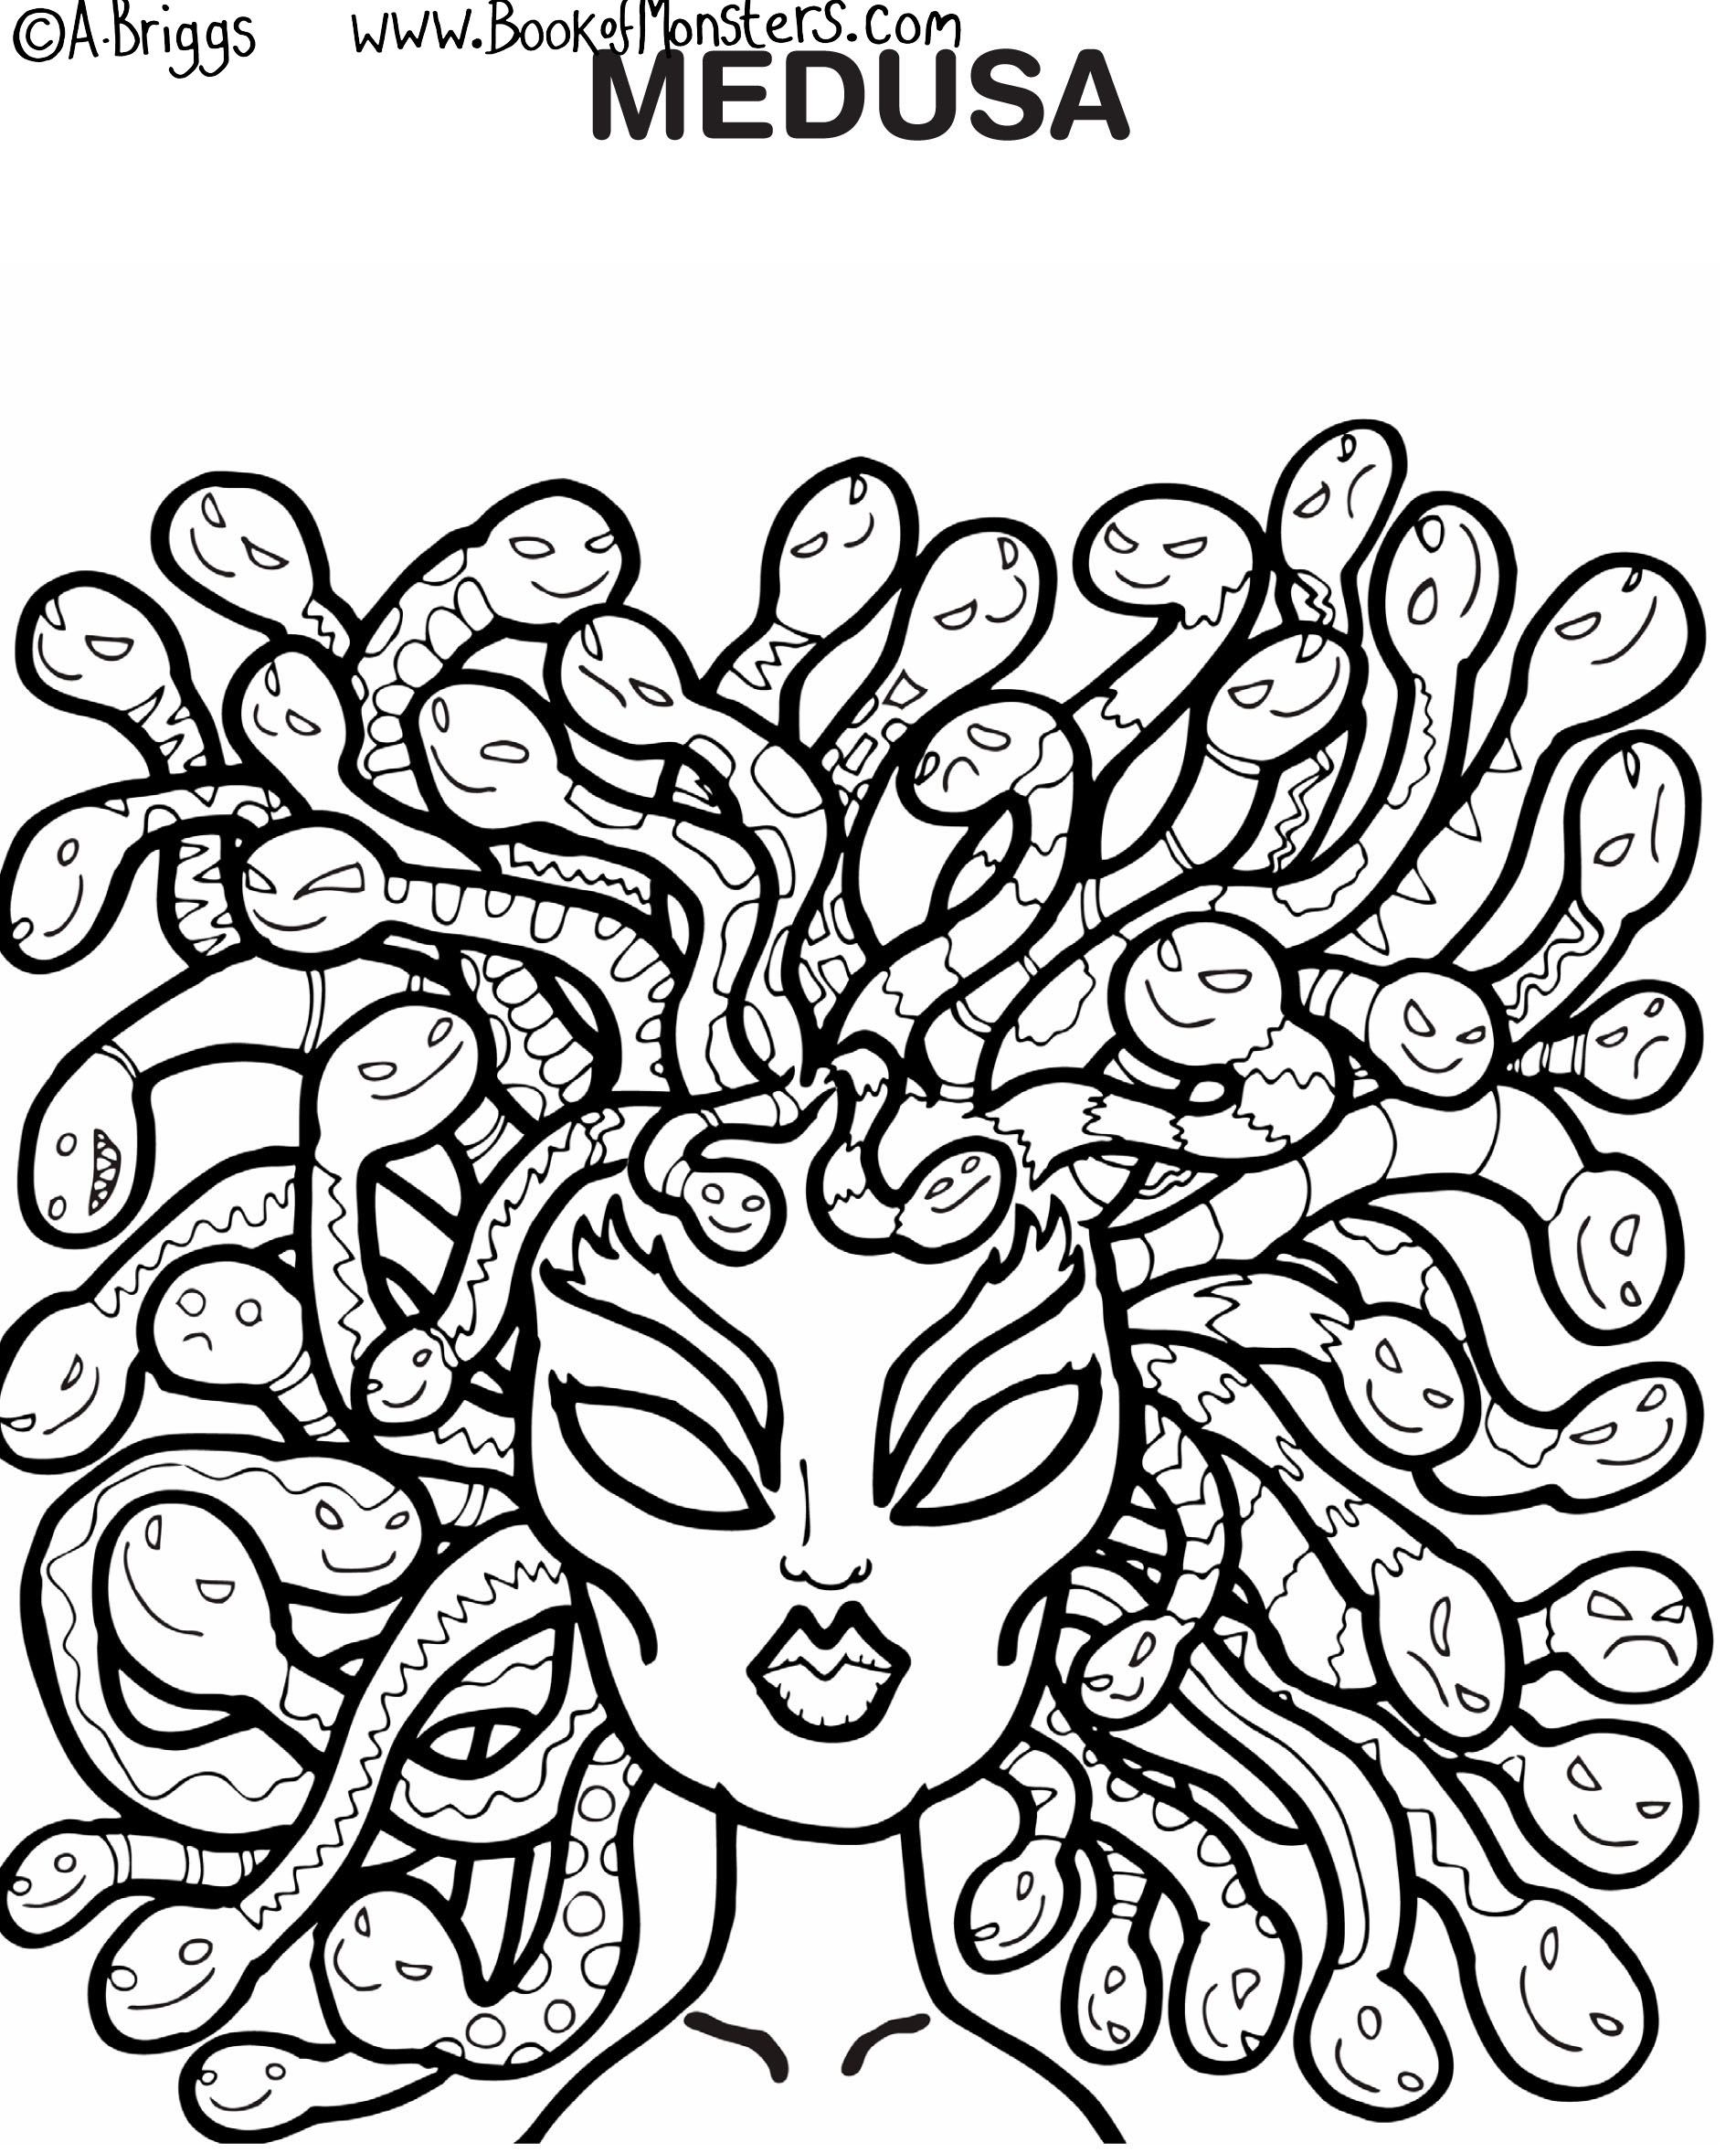 Medusa Coloring Pages At Getcolorings